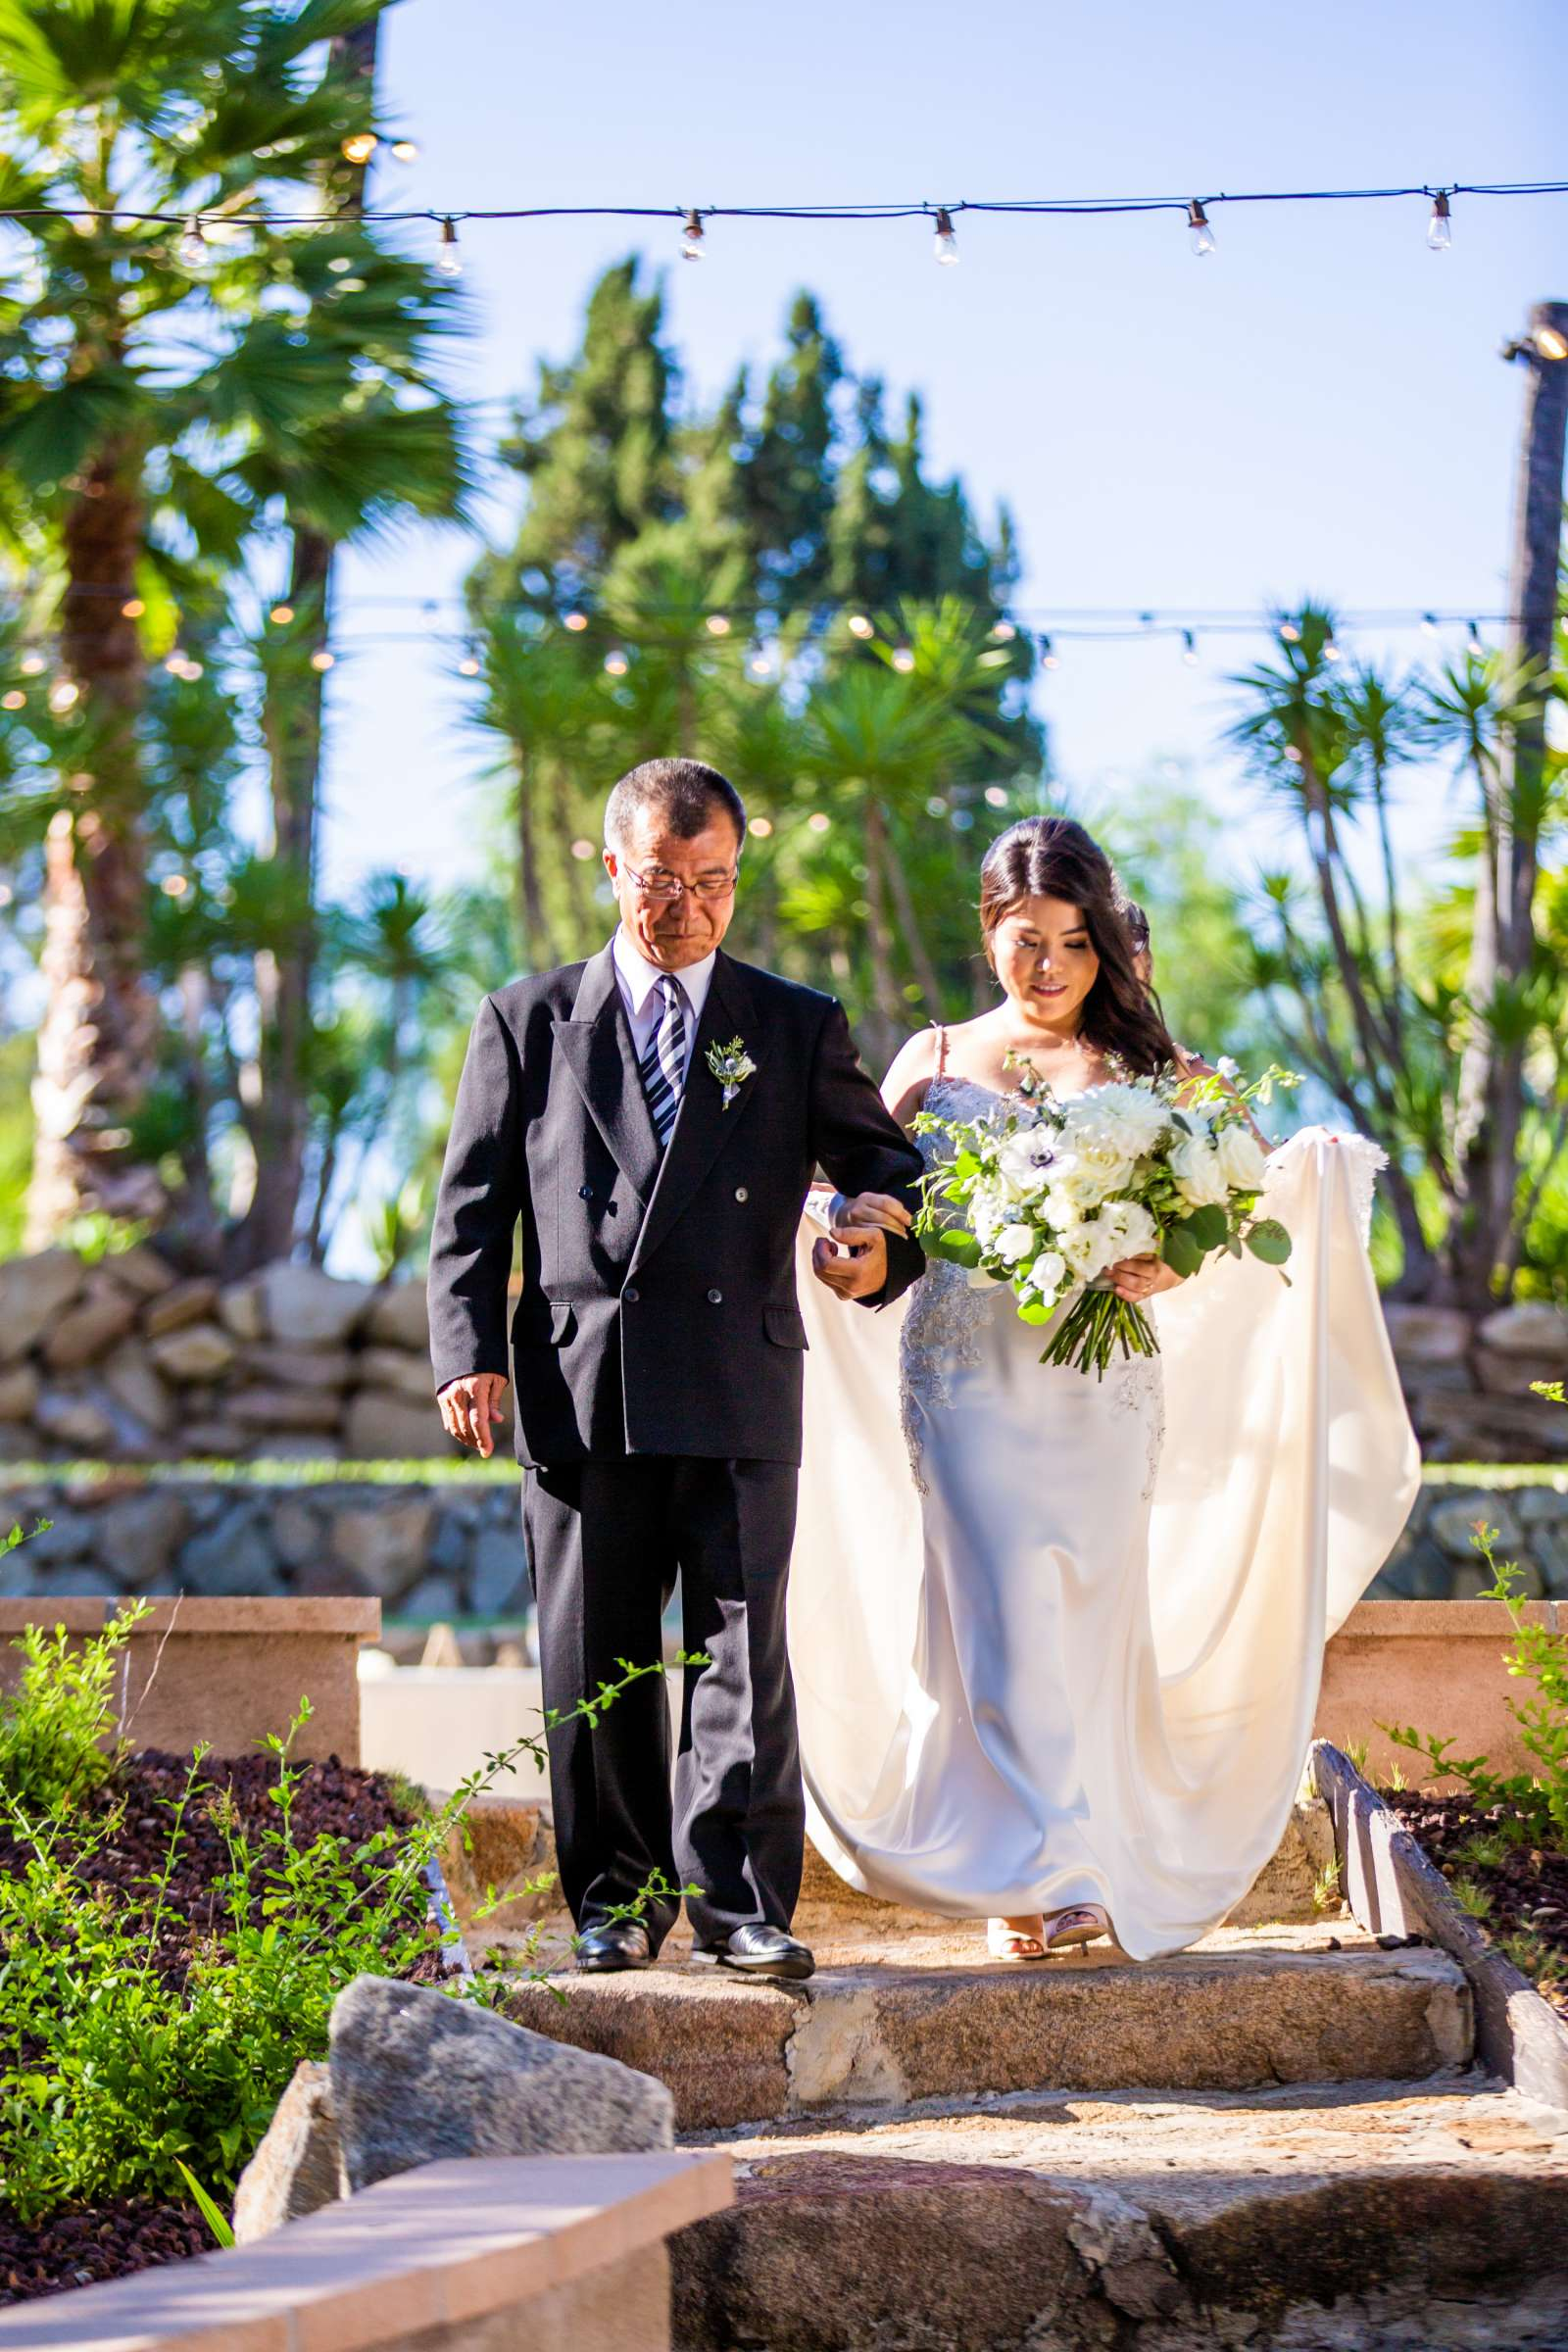 Mt Woodson Castle Wedding coordinated by I Do Weddings, Aya and Jared Wedding Photo #486932 by True Photography